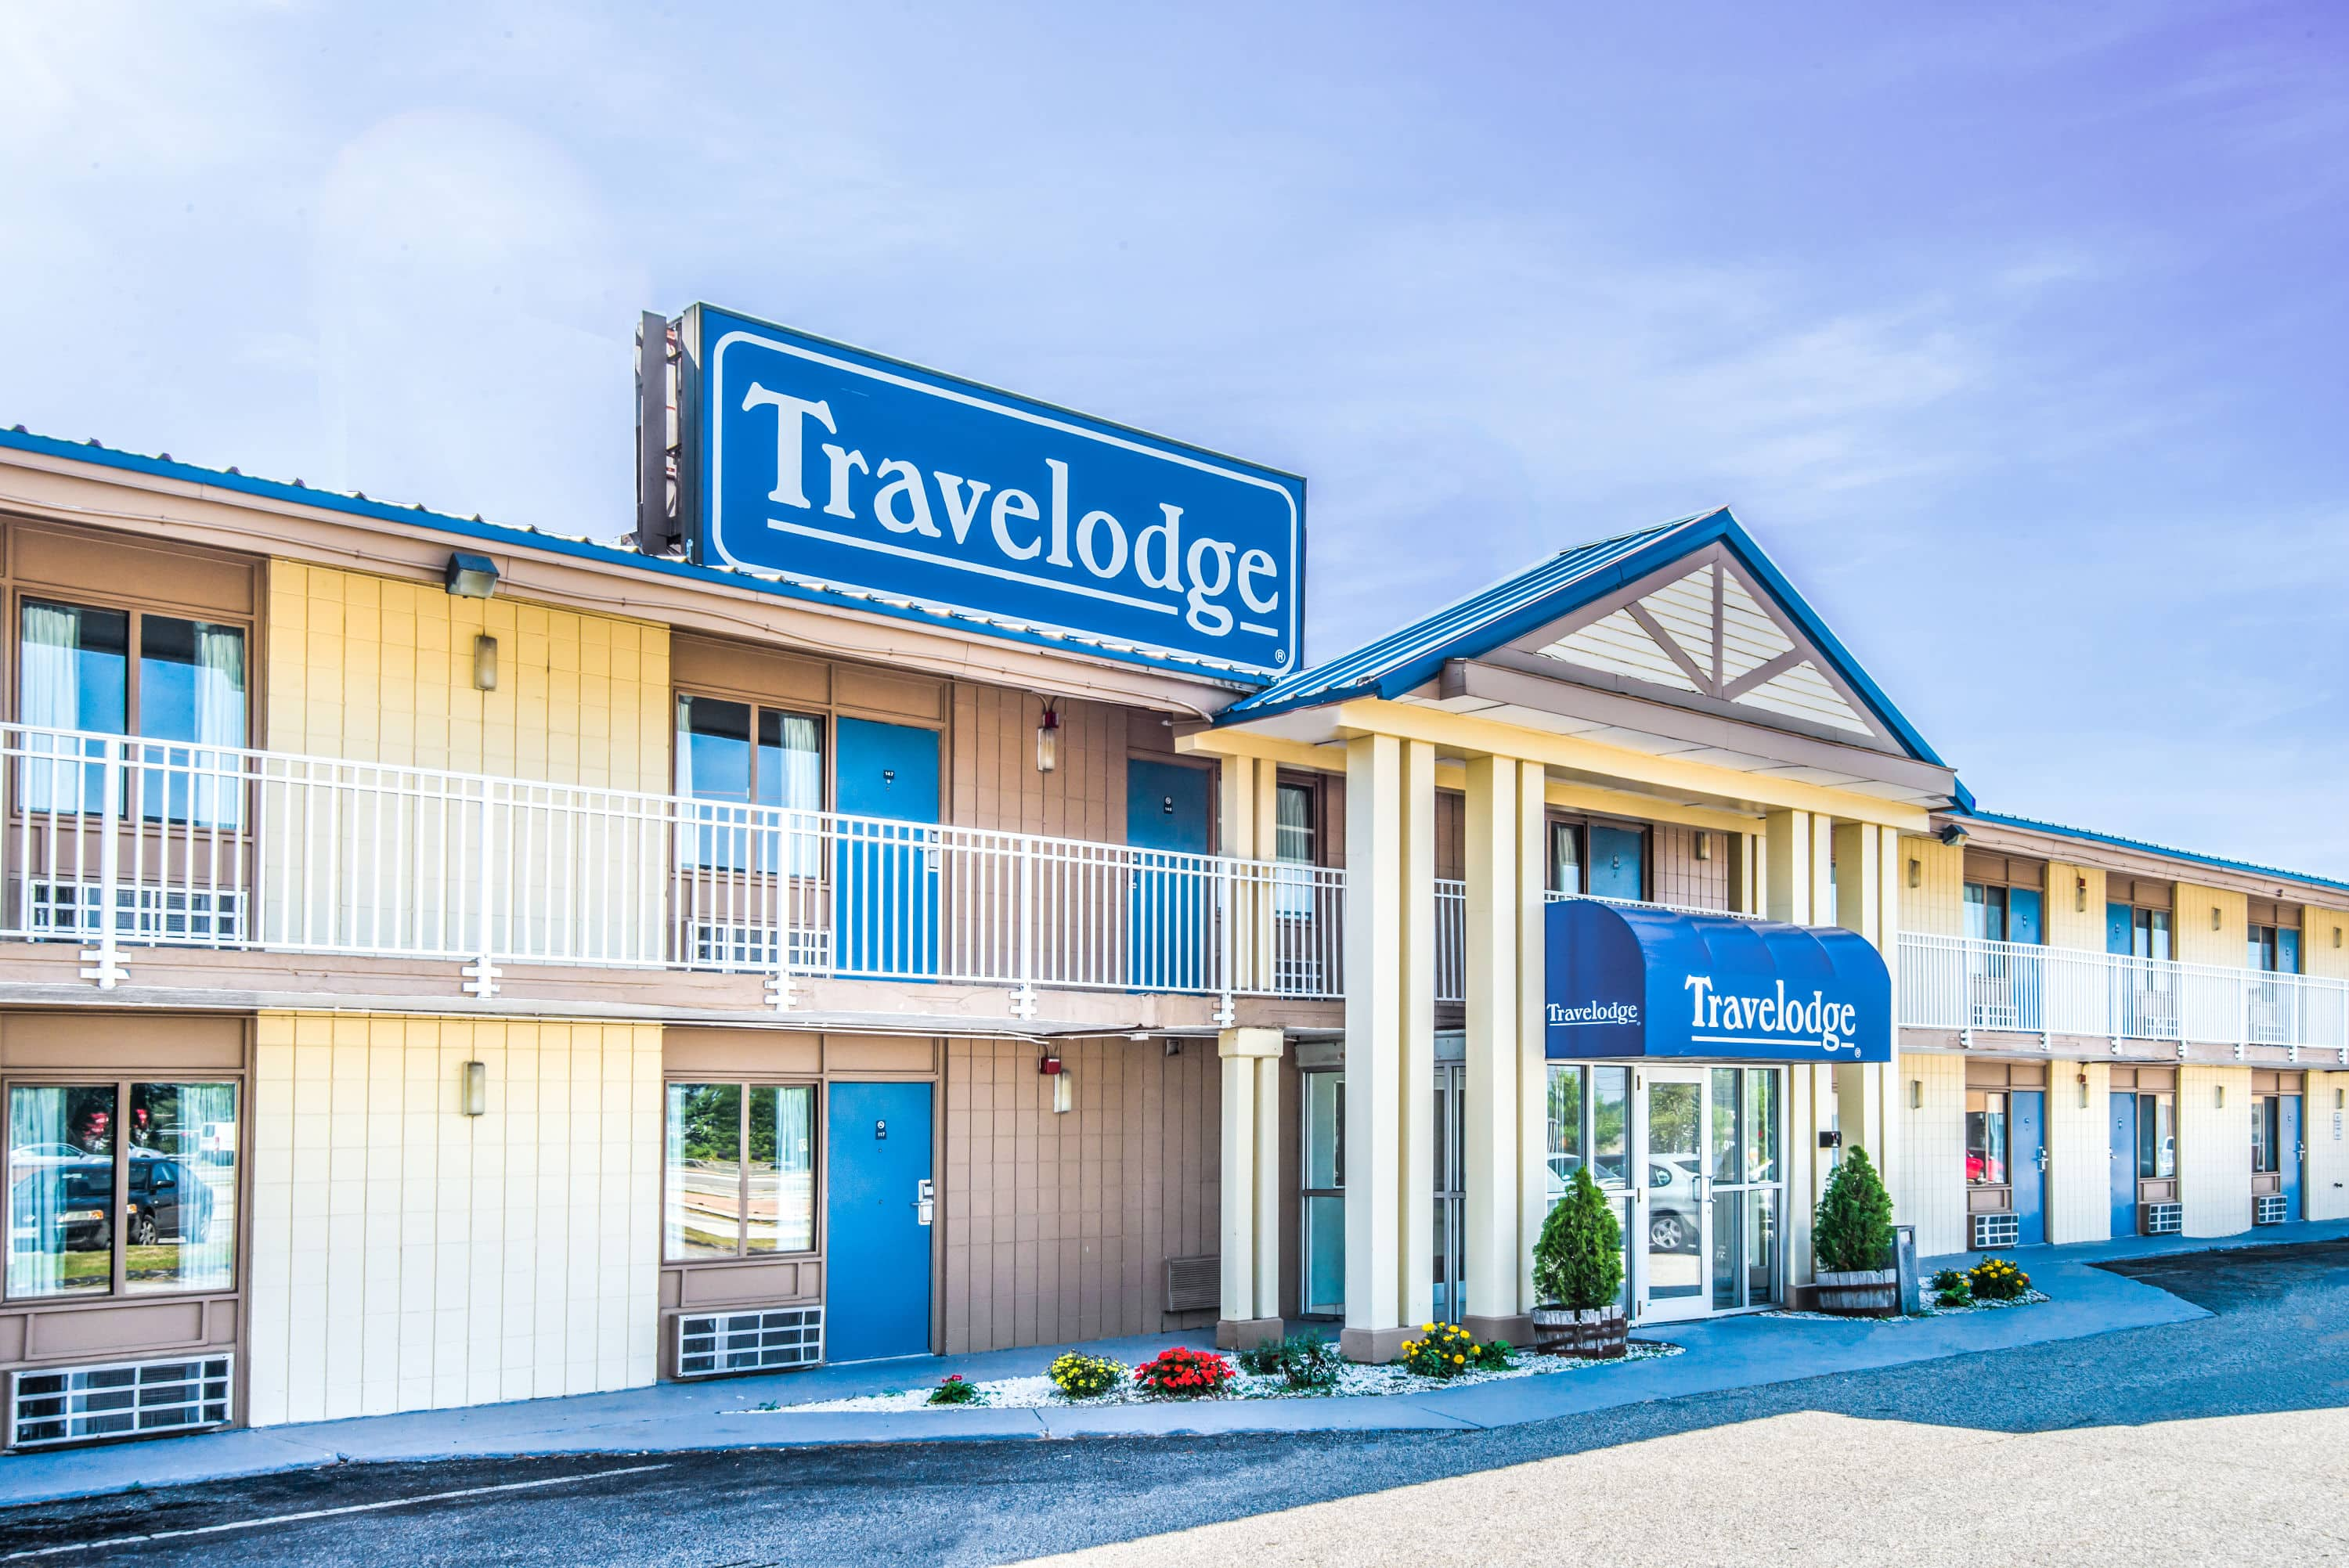 Exterior Of Portland Travelodge Hotel In Maine With Airport Hotels